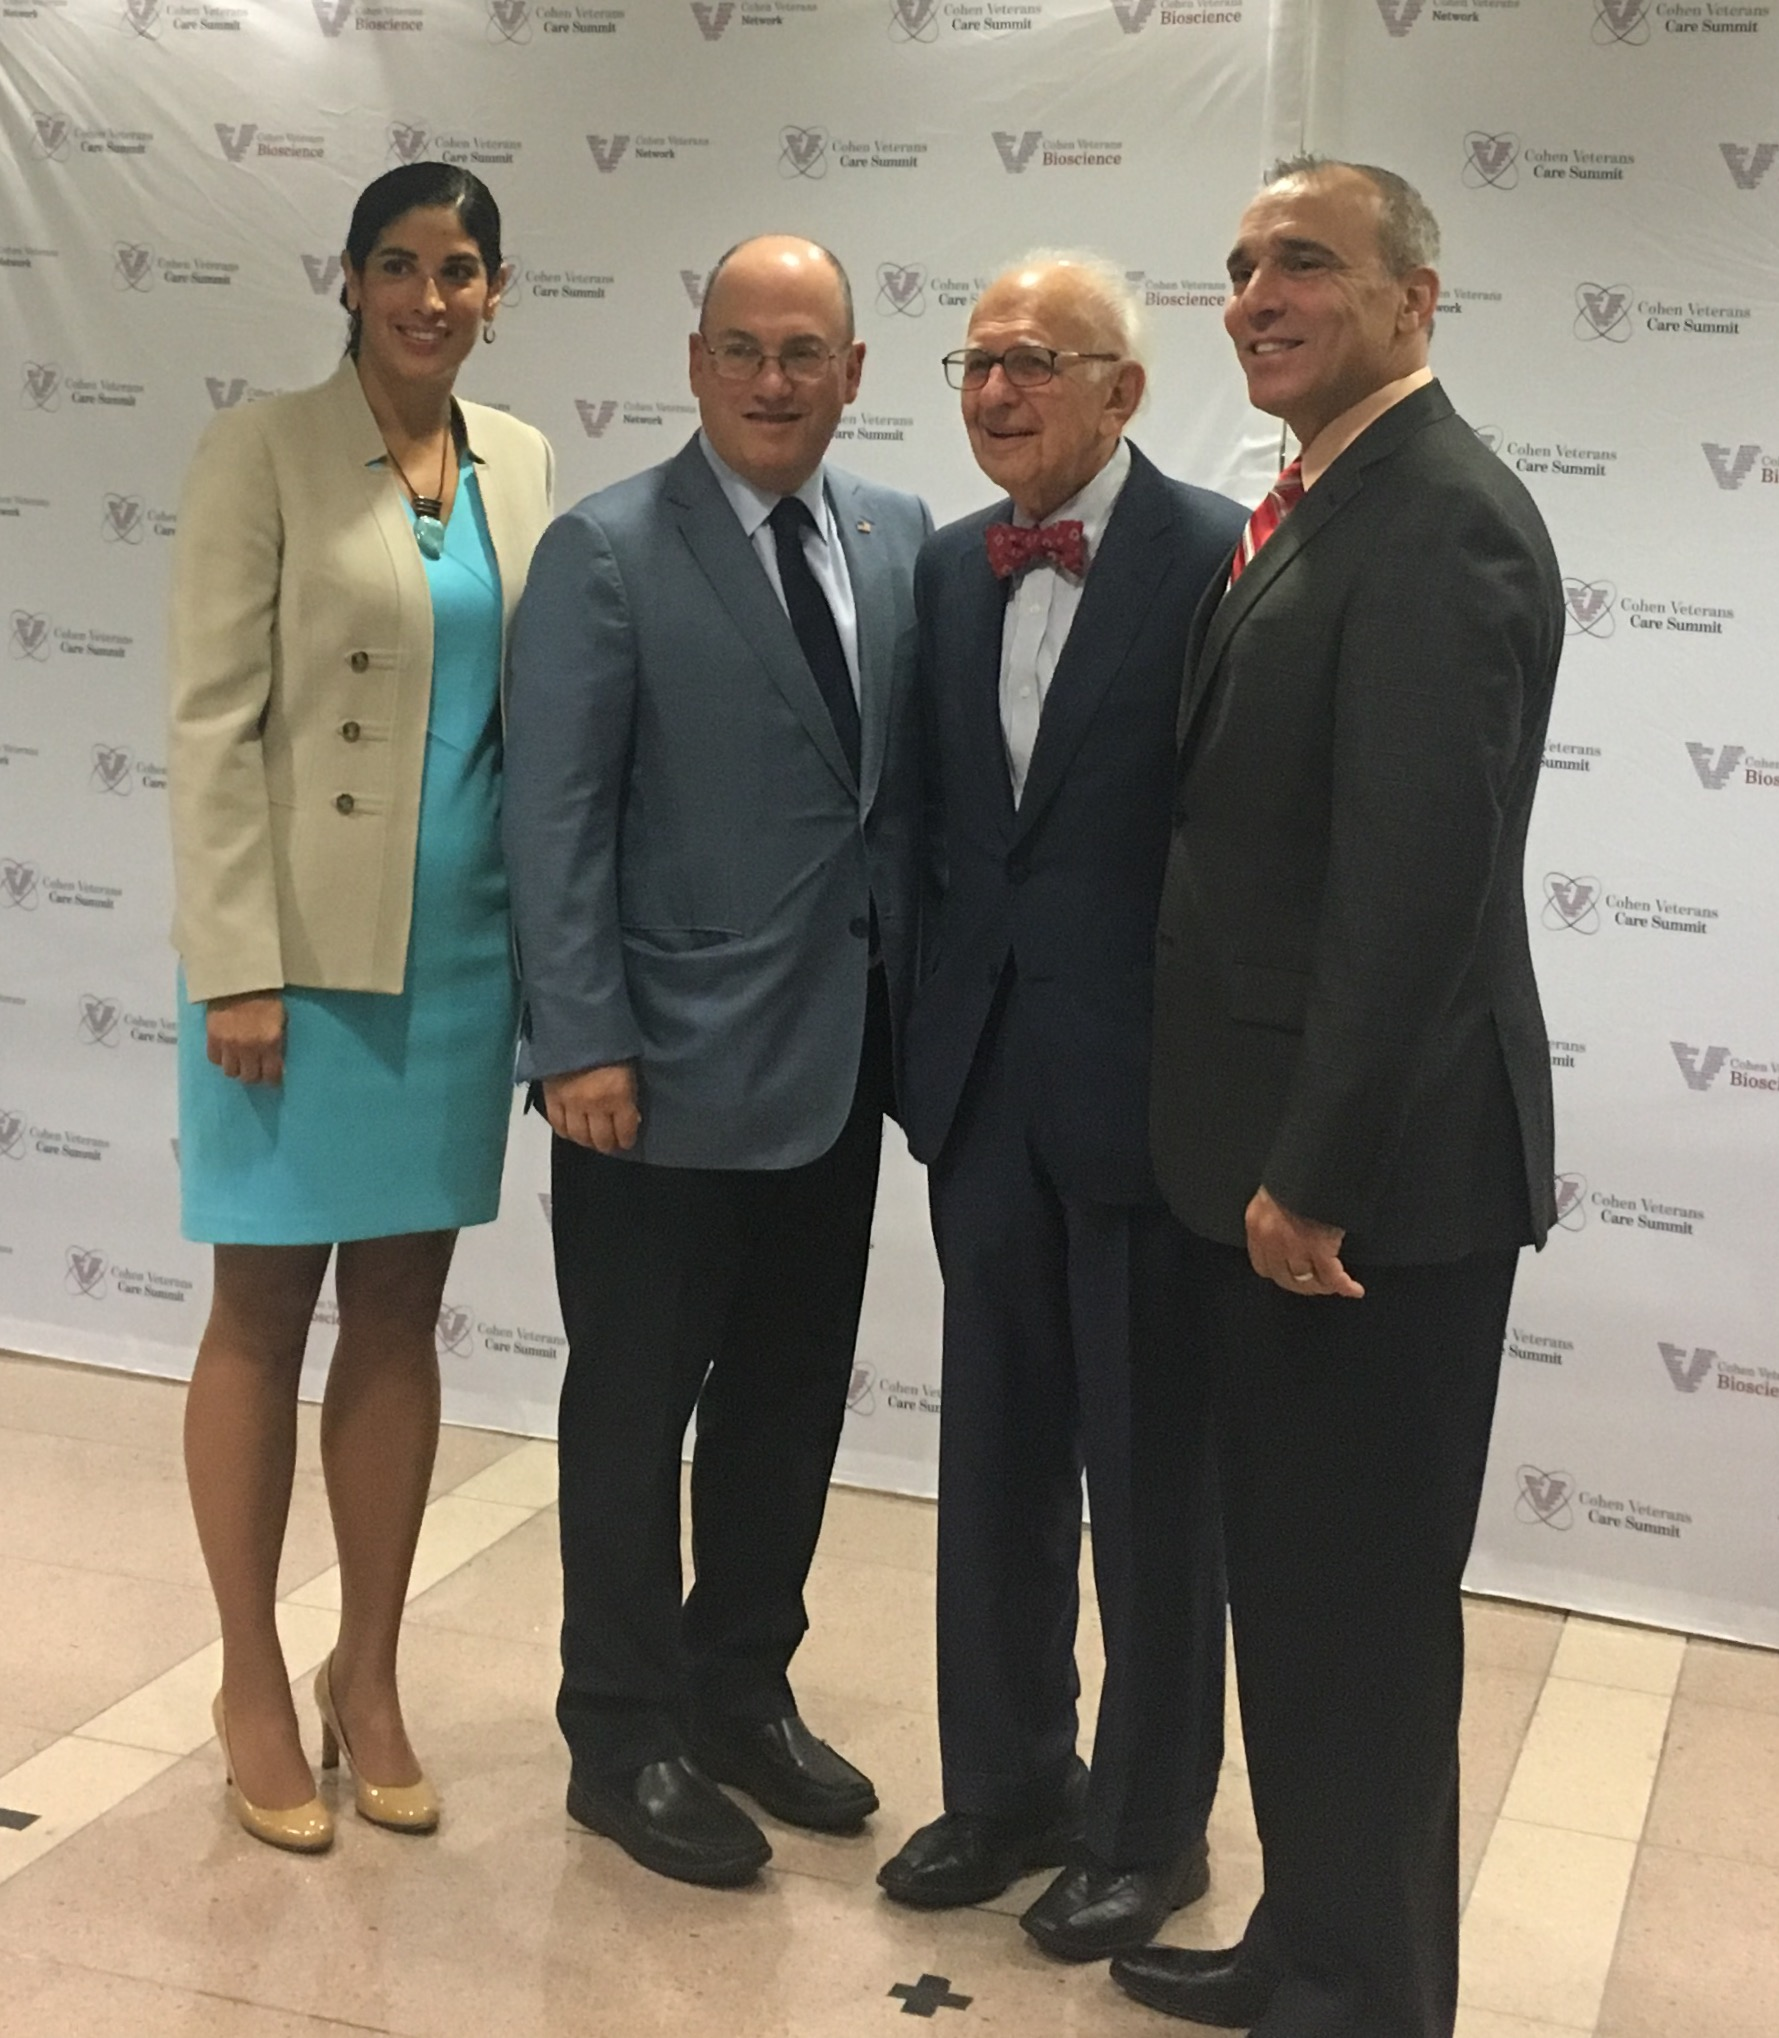 Dr. Magali Haas, CEO of Cohen Veterans Bioscience; Steven A. Cohen, CEO of Point72; Eric Kandel, professor at Columbia; and Anthony Hassan, CEO of Cohen Veterans Network, at the inaugural Cohen Veterans Care Summit at the Ronald Reagan Building in Washington, D.C. on Sept. 22, 2016.